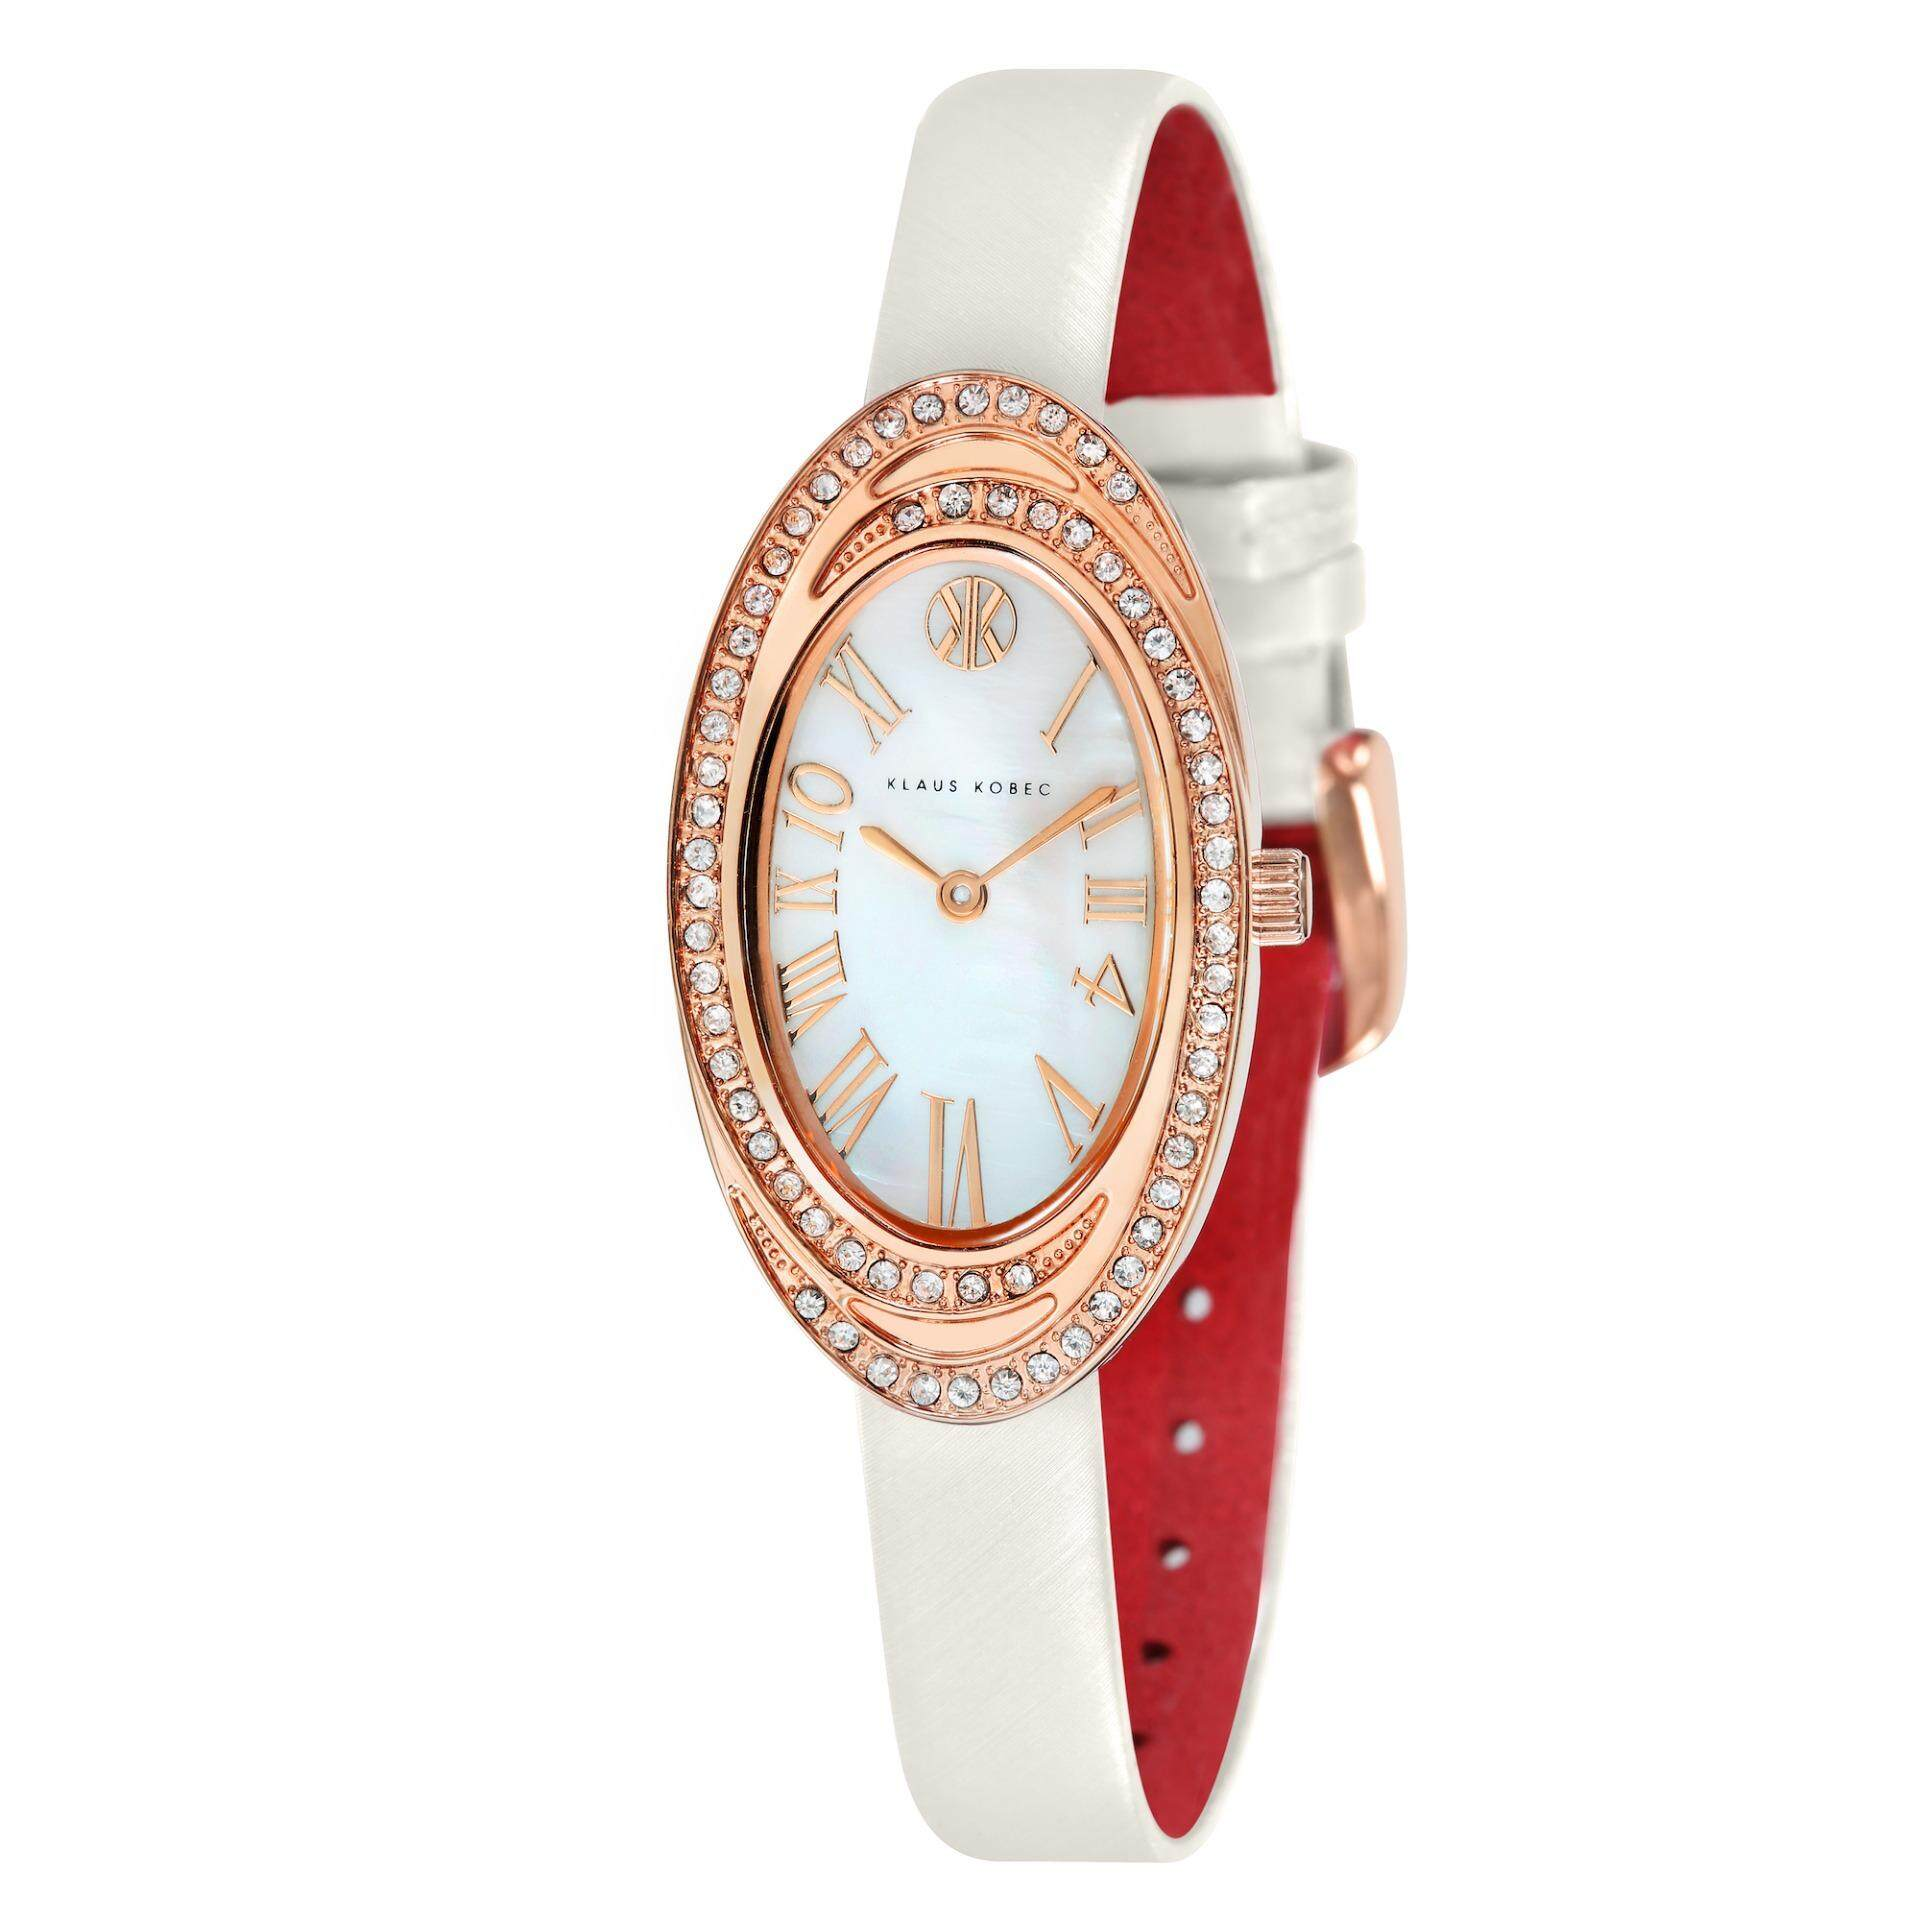 q watches ceramic womens am women quartz white s sale end i htm watch onsalewatches dkny